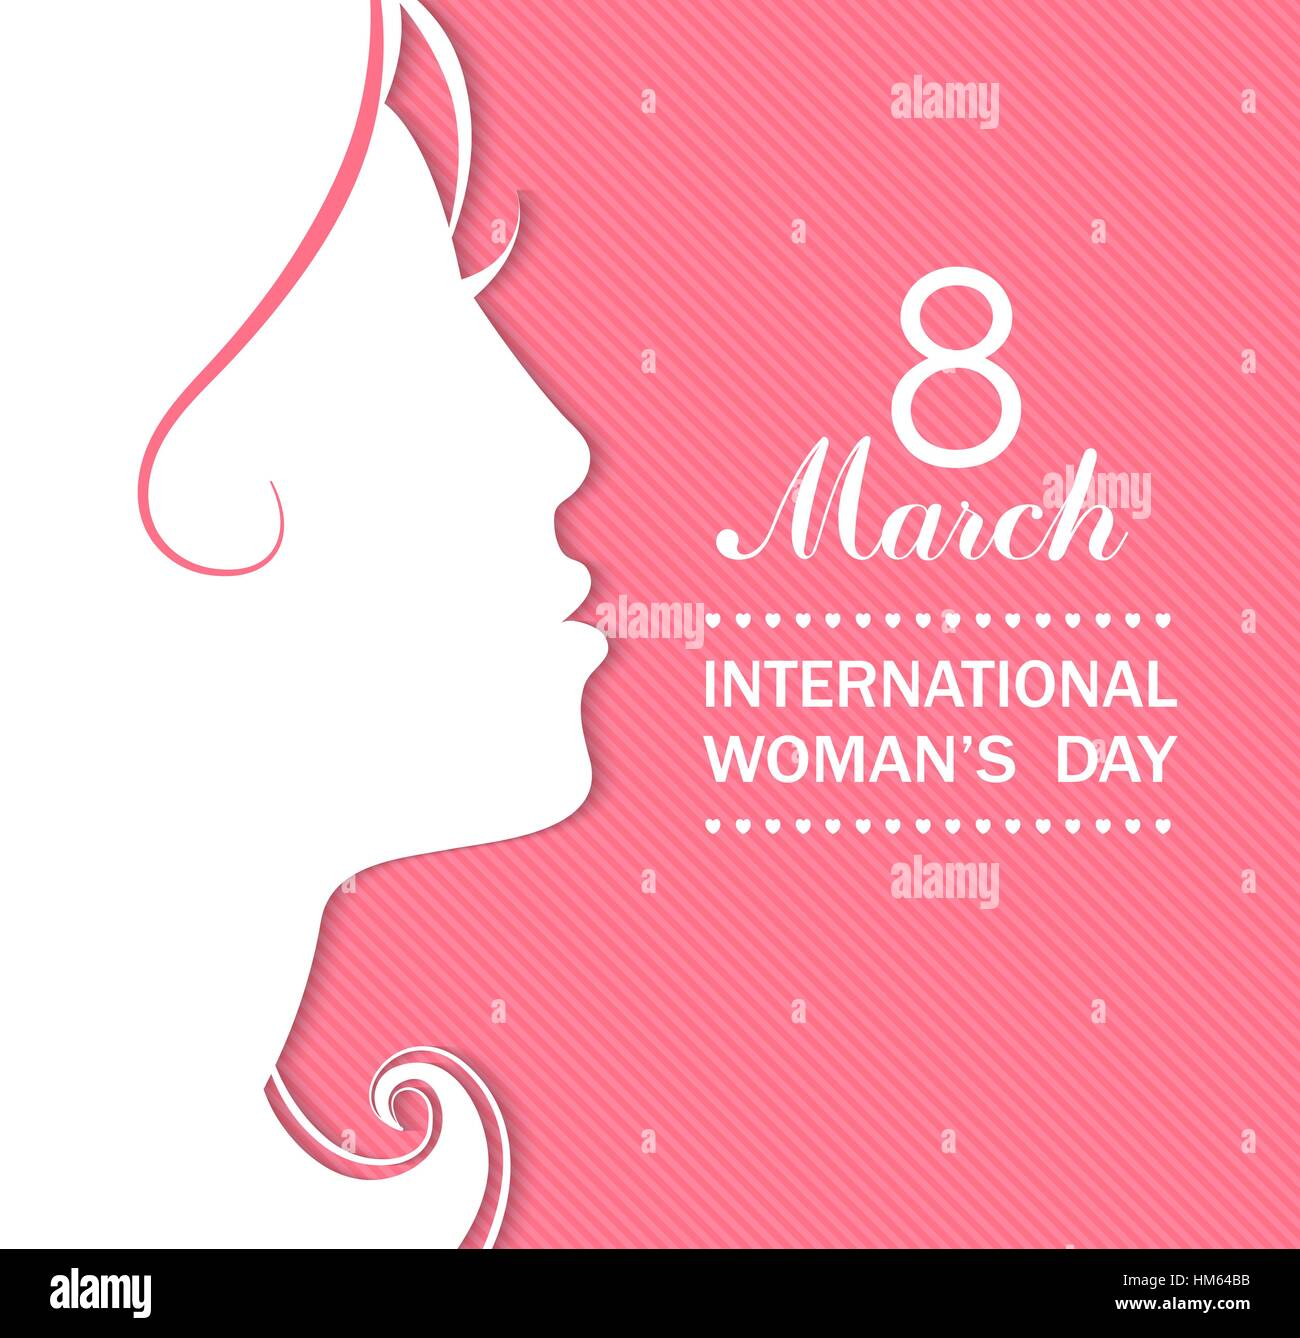 Happy Women's Day celebrations concept with a girl face on pink background. Vector illustration. - Stock Vector